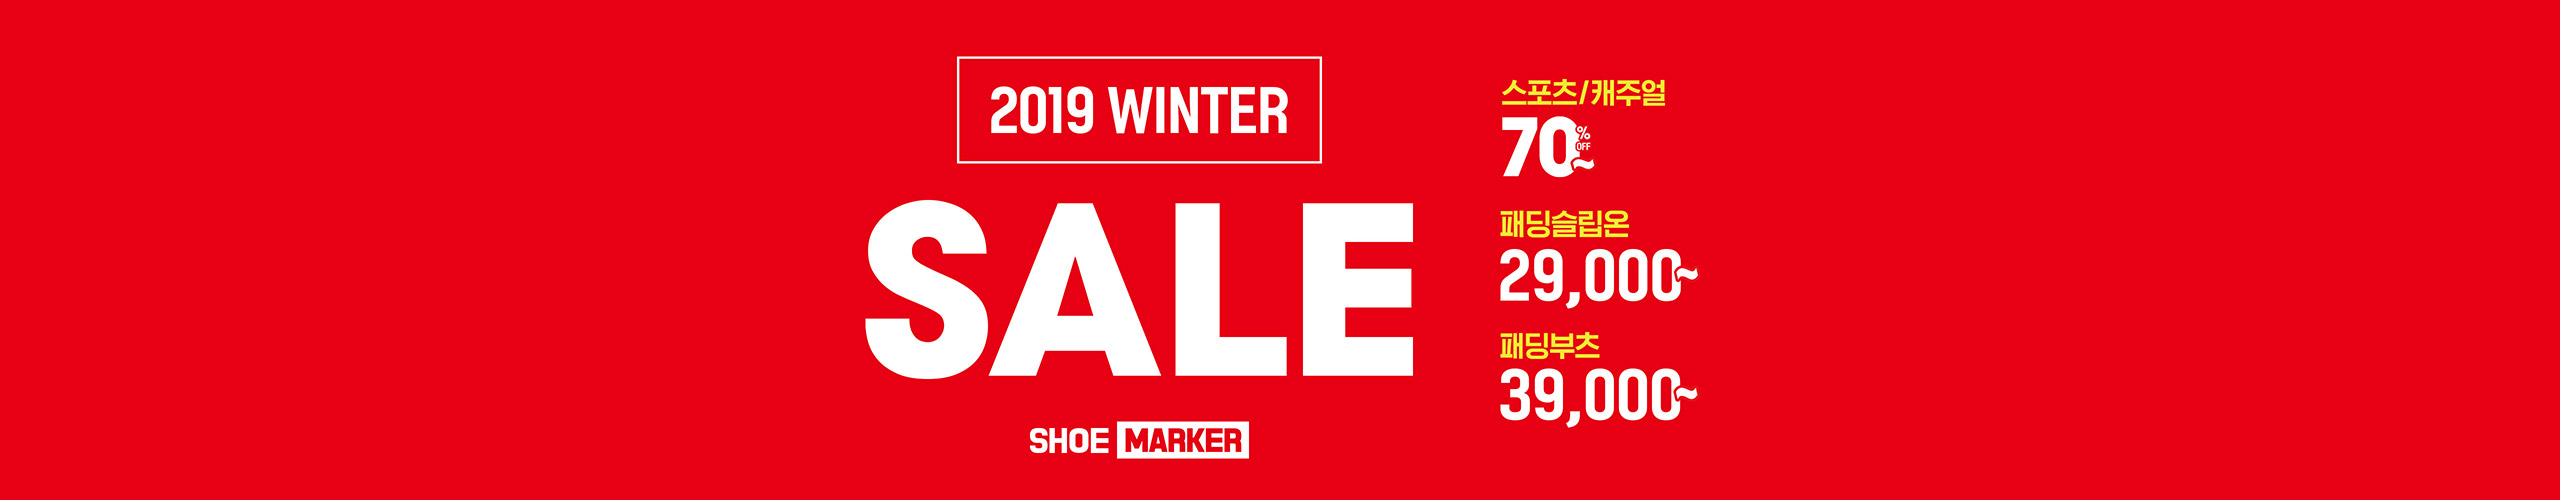 2019 WINTER SEASON OFF SALE